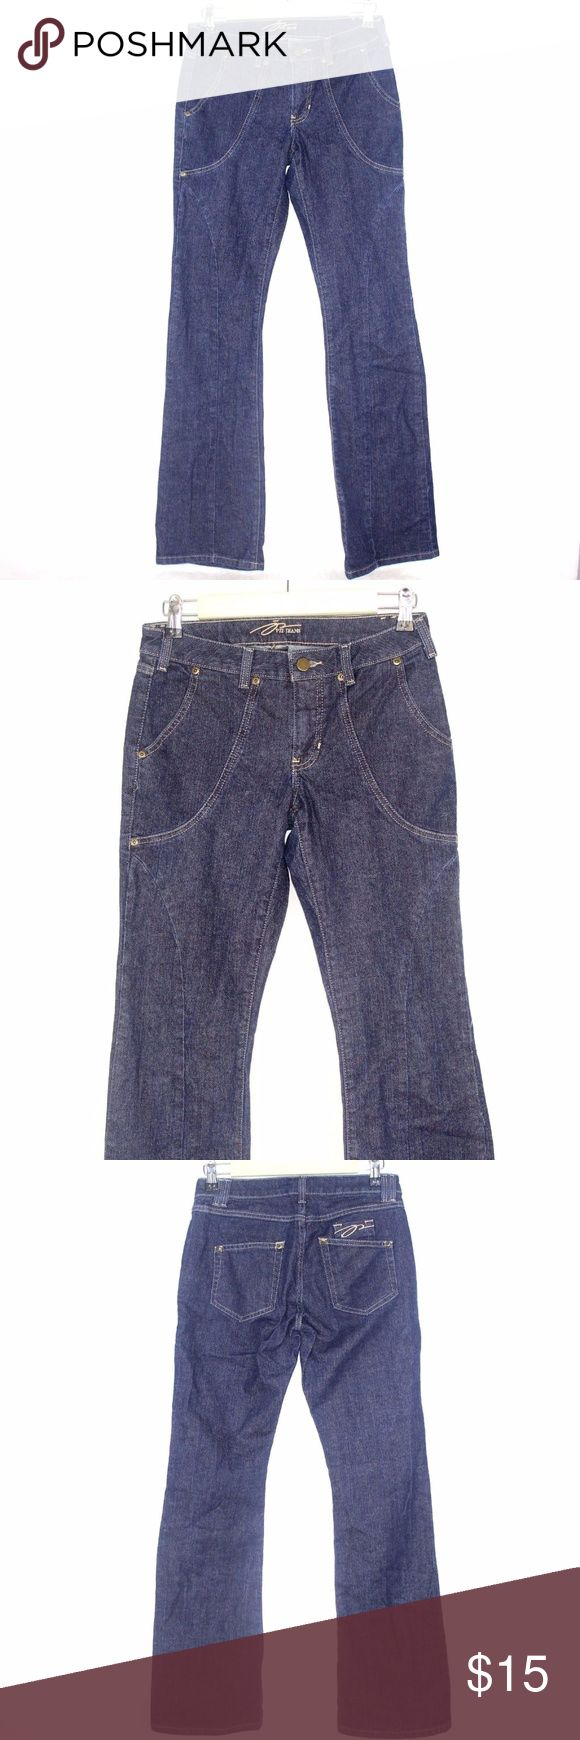 PZI JEANS Womens Axle Blue Premium Denim Jeans Cut PZI JEANS Womens Axle Blue Premium Denim Jeans Cut Flare Fit Curves Sz 6 C1 99% Cotton 1% Spandex Axle Blue Waist 14 1/2 Inches Inseam 34 Inches PZI Jeans has made a discovery...CURVES come in all shapes and sizes! PZI Jeans Flare & Wide Leg